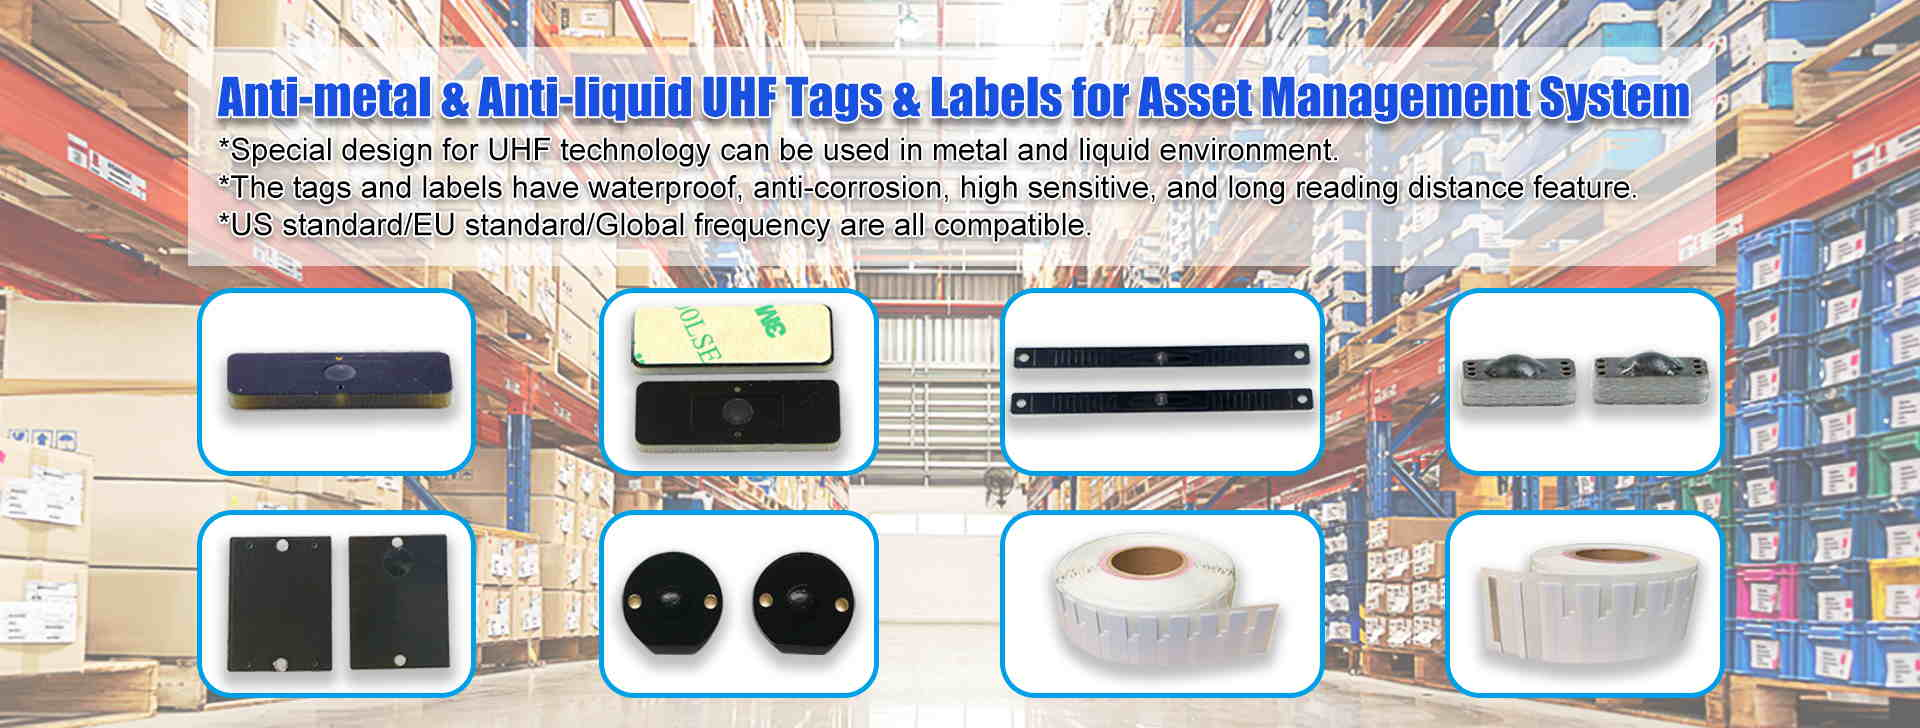 RFID Flexible UHF Label